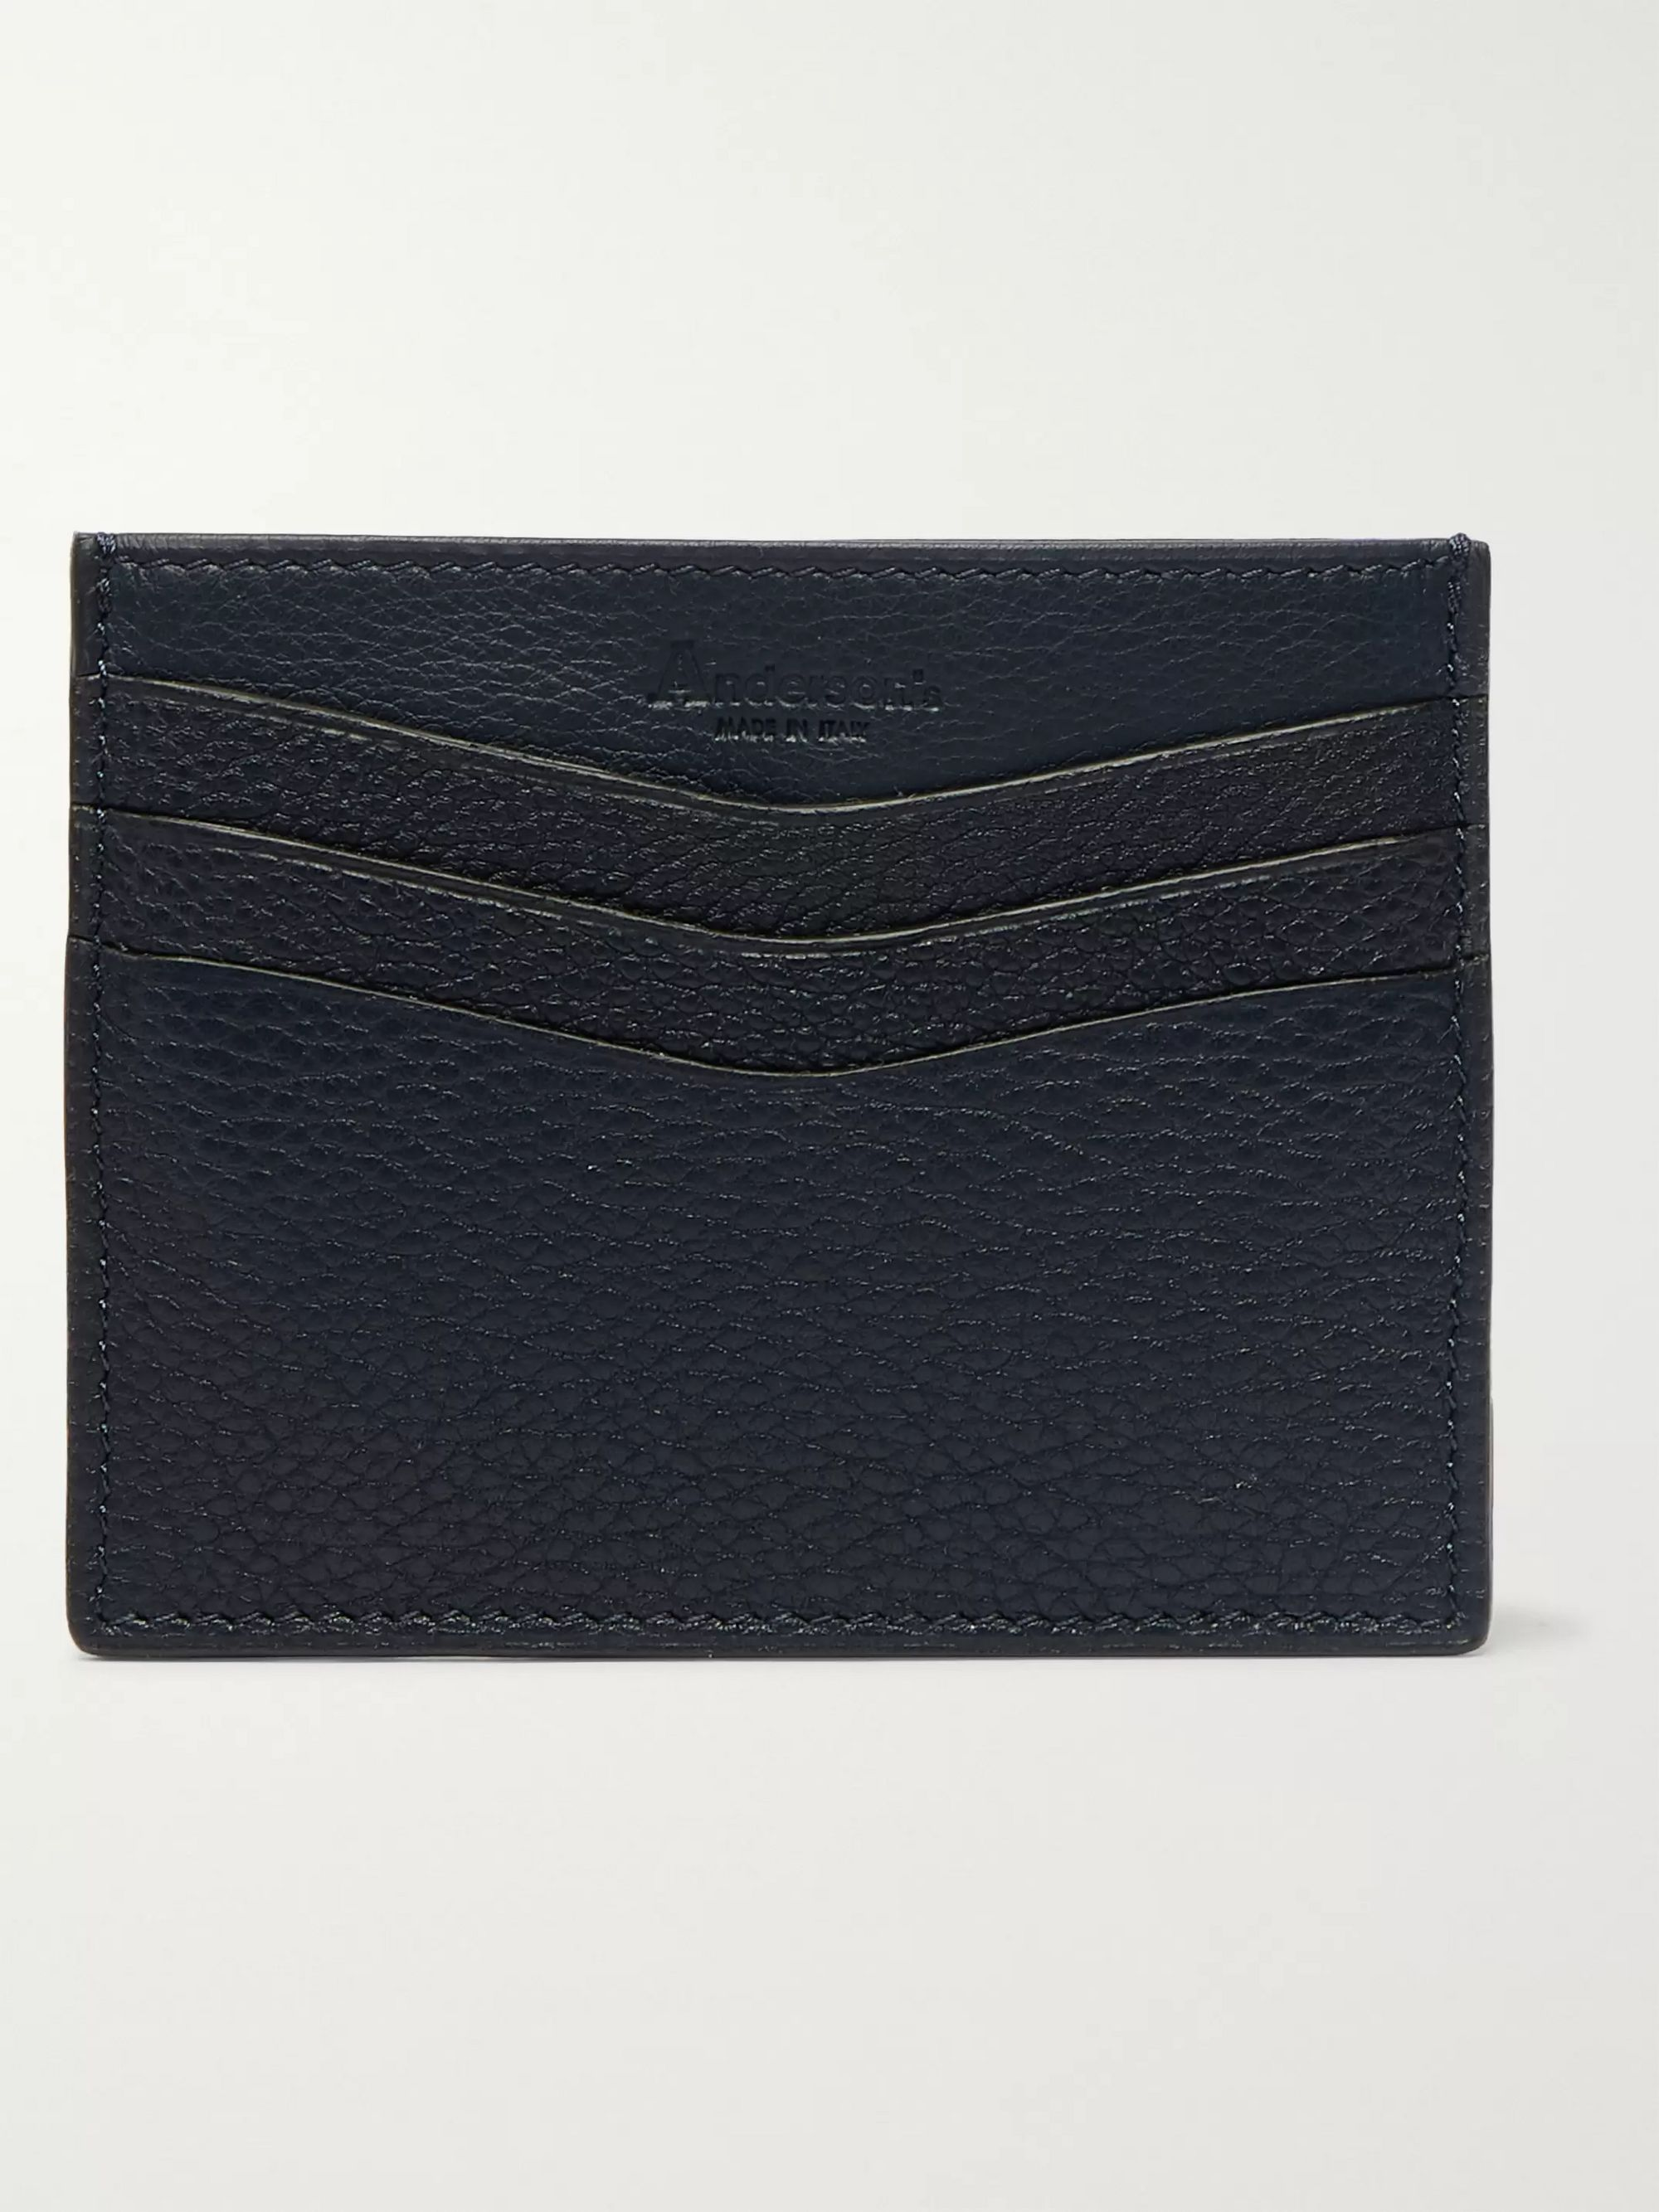 Full Grain Leather Cardholder by Anderson's